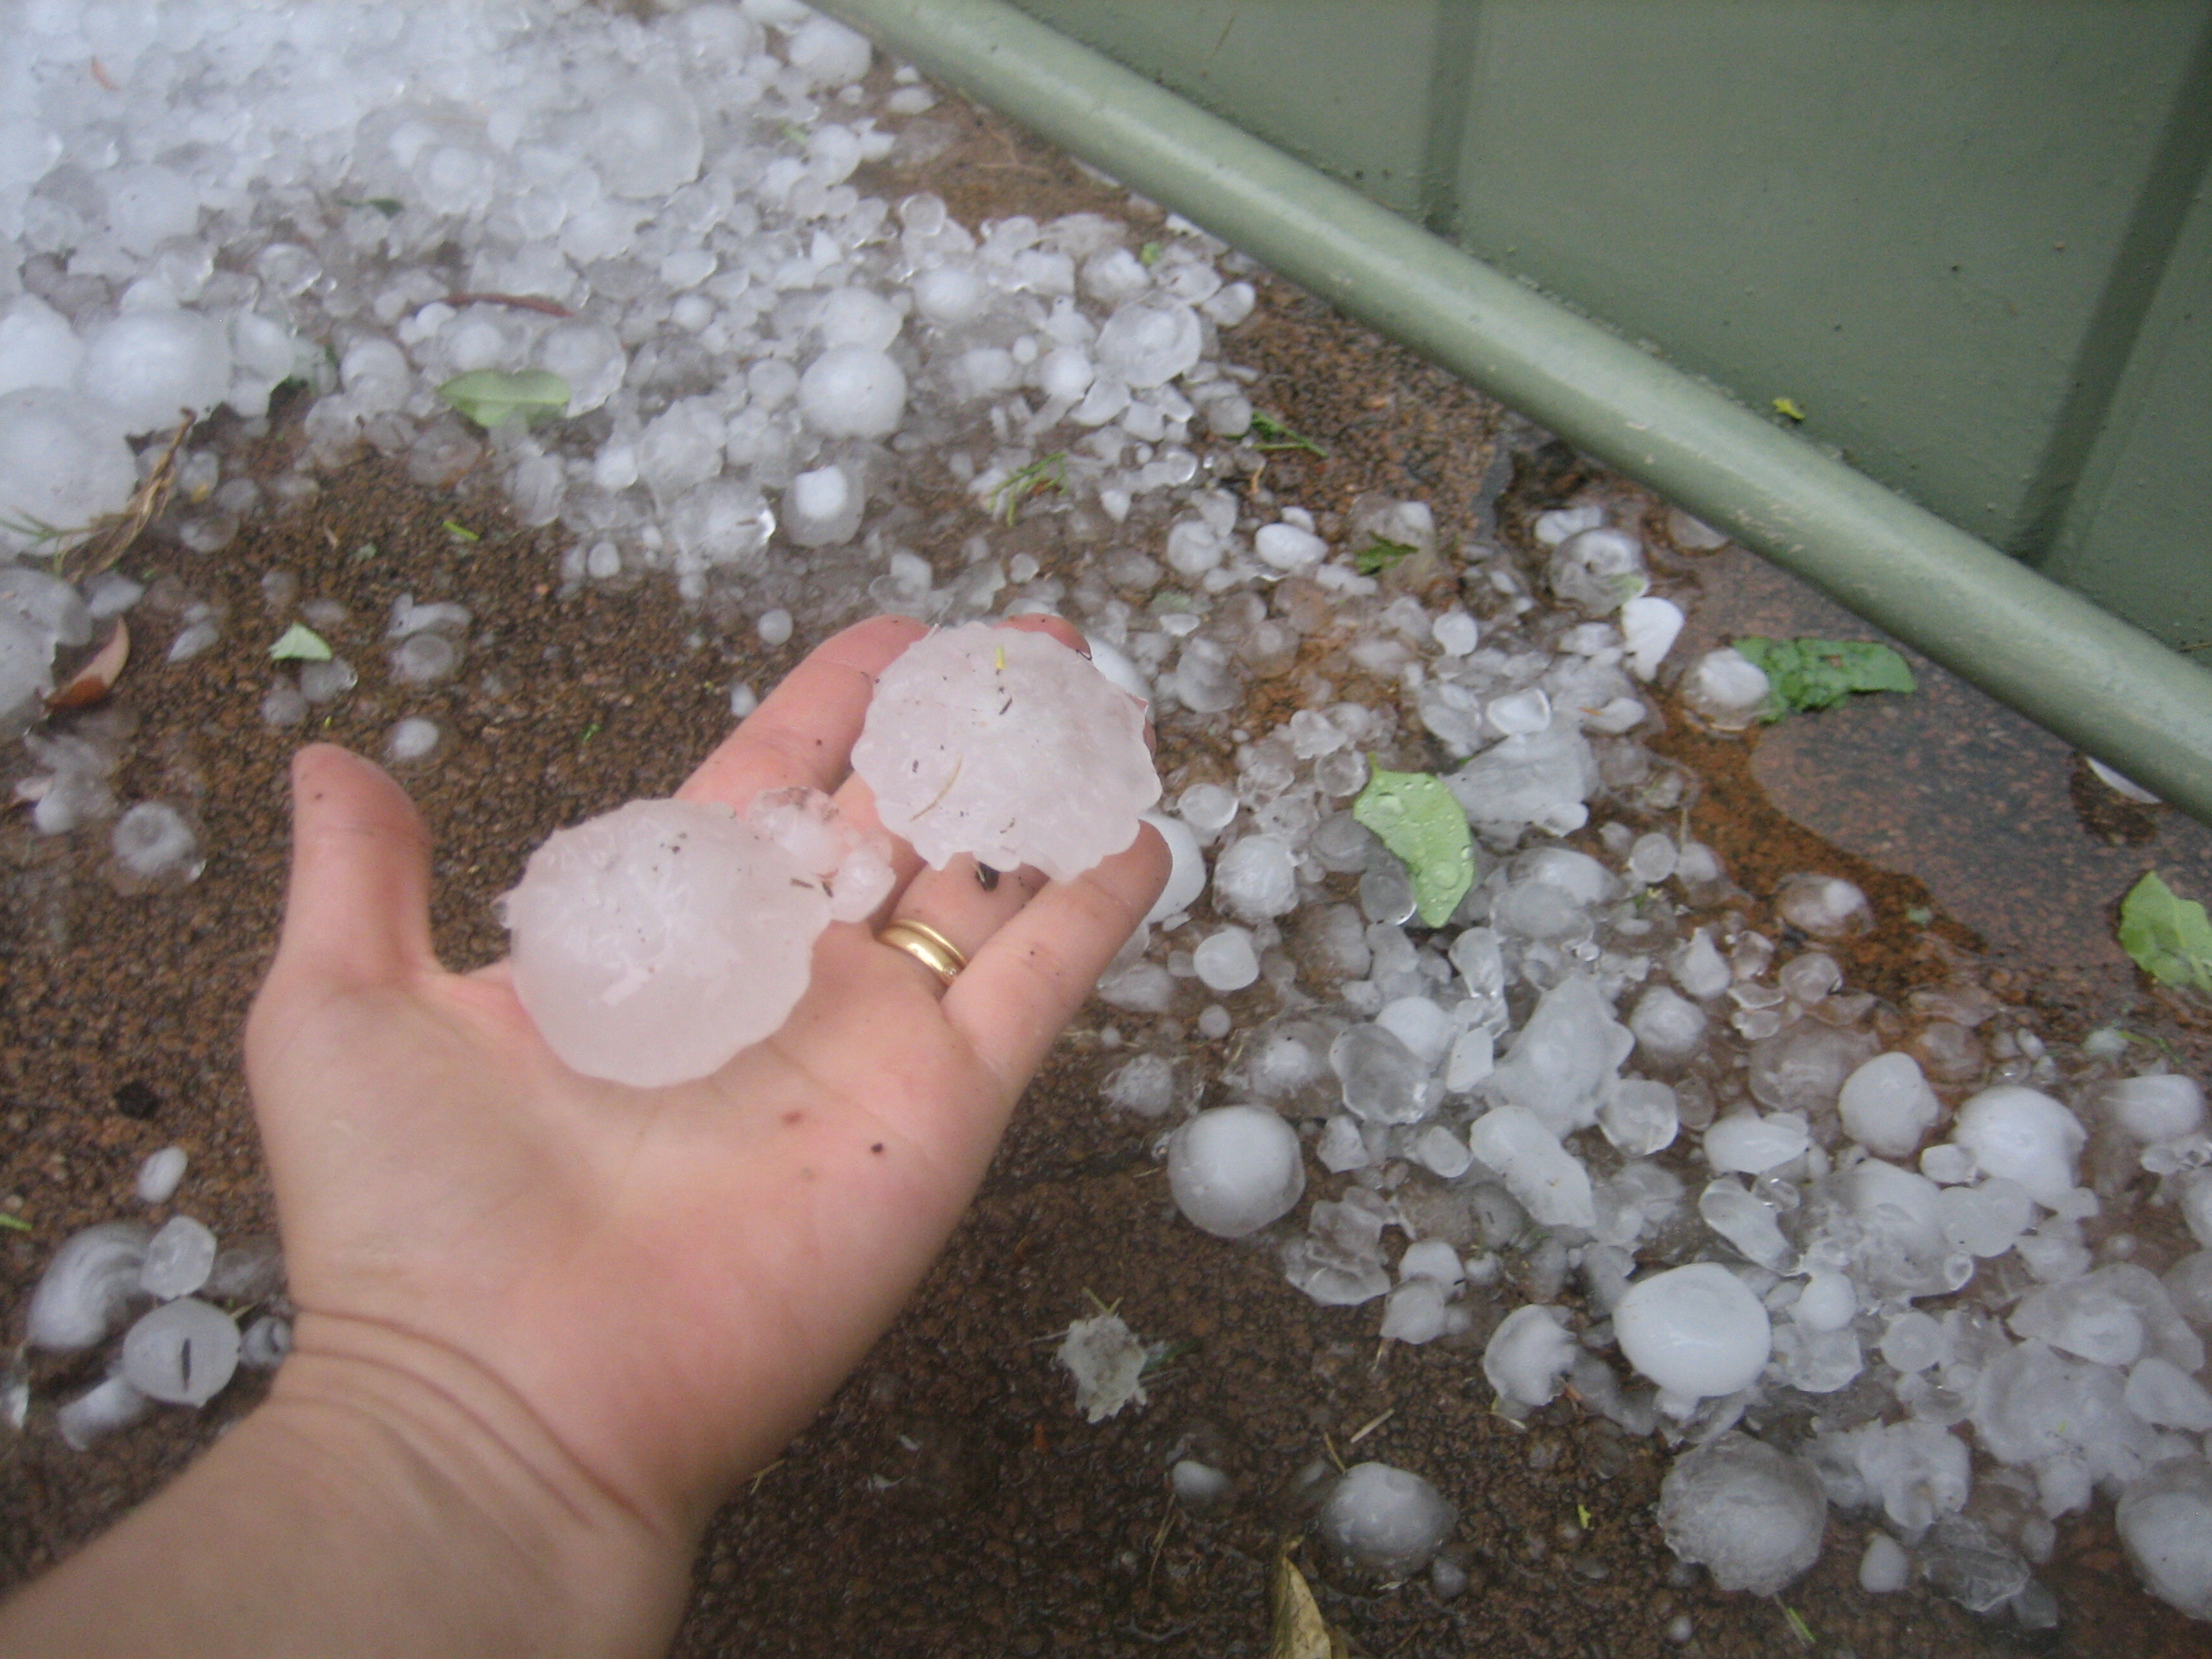 File:Perth hail size compared to hand.jpg - Wikimedia Commons